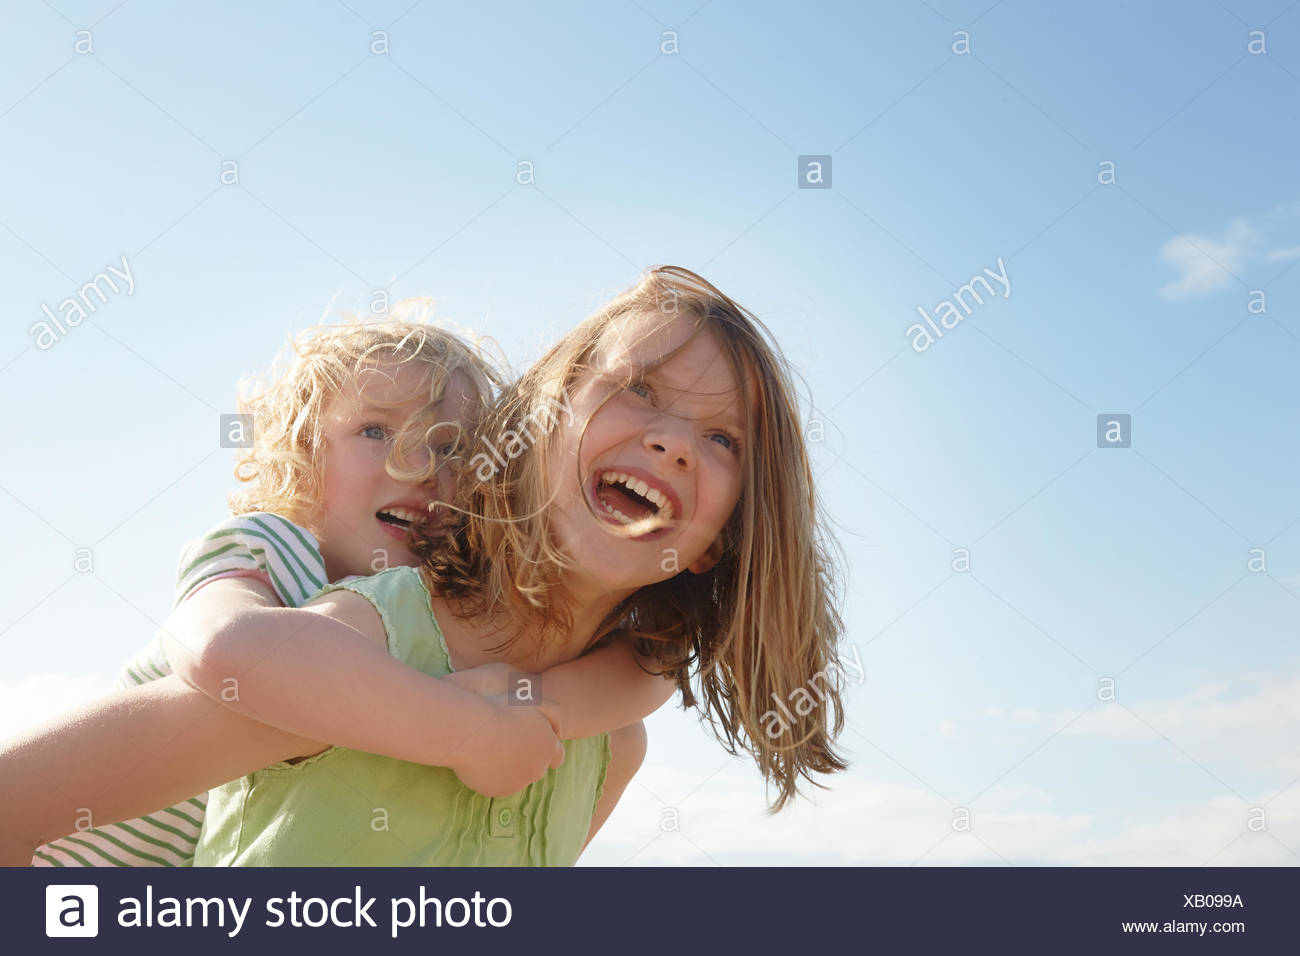 Low angle view of girl giving soeur piggy back at coast Photo Stock